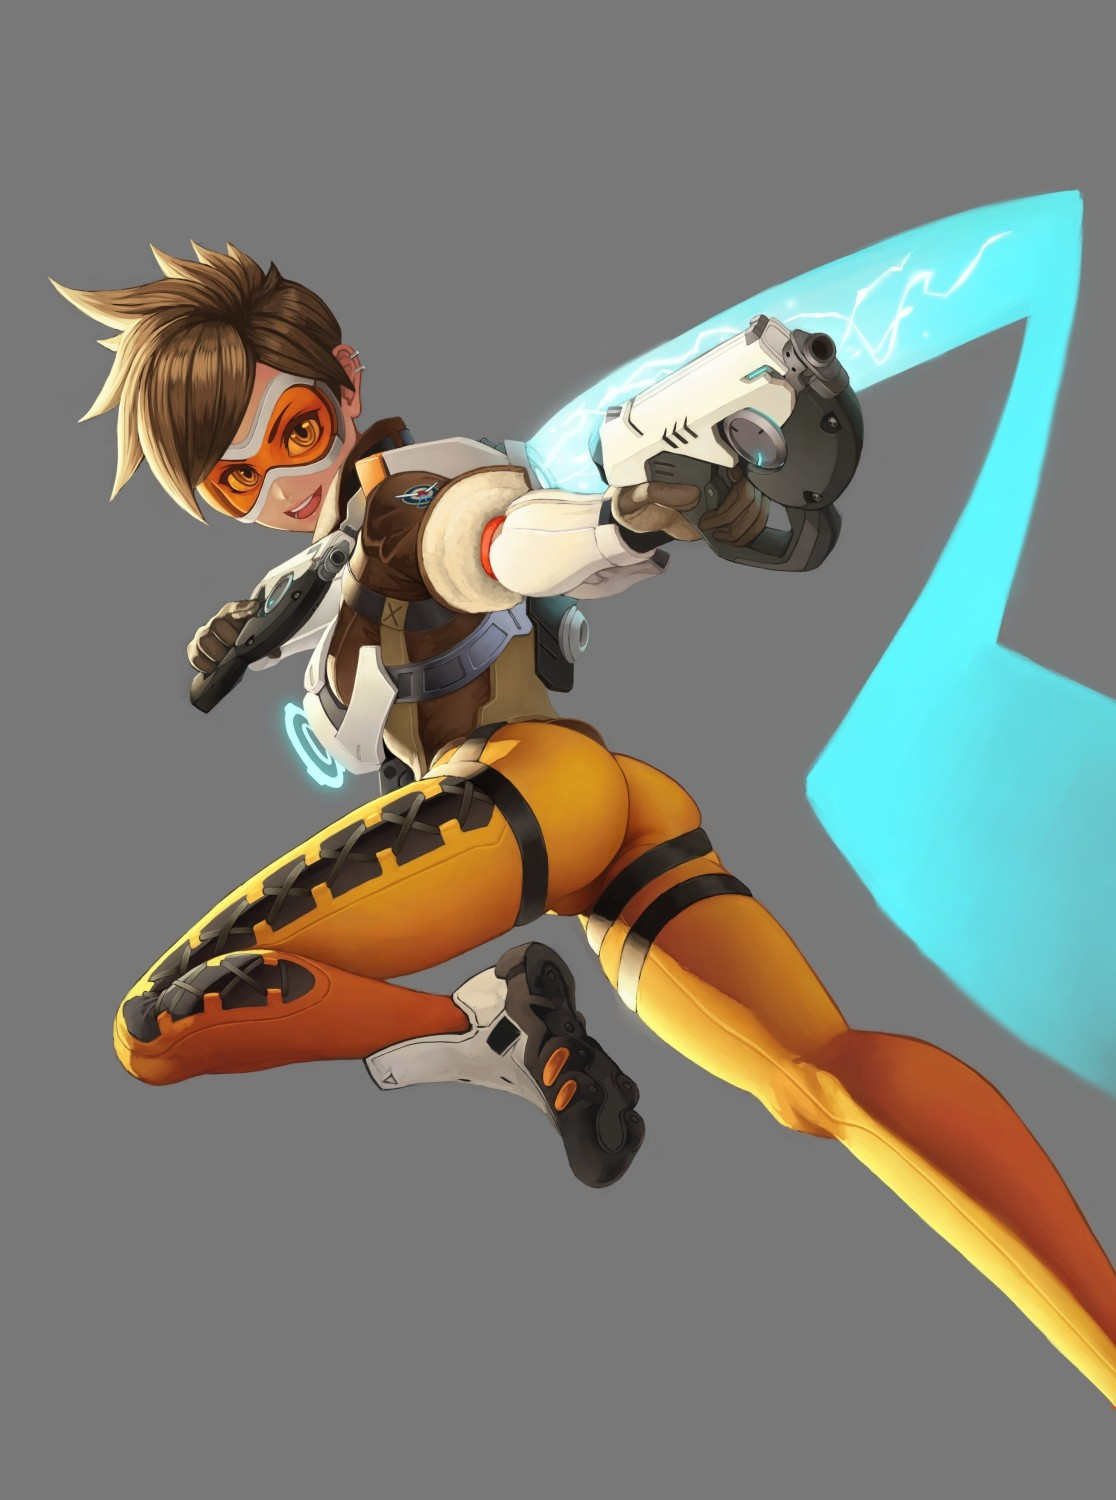 Anime 1116x1500 Overwatch Tracer (Overwatch) bodysuit ass short hair brunette cyan